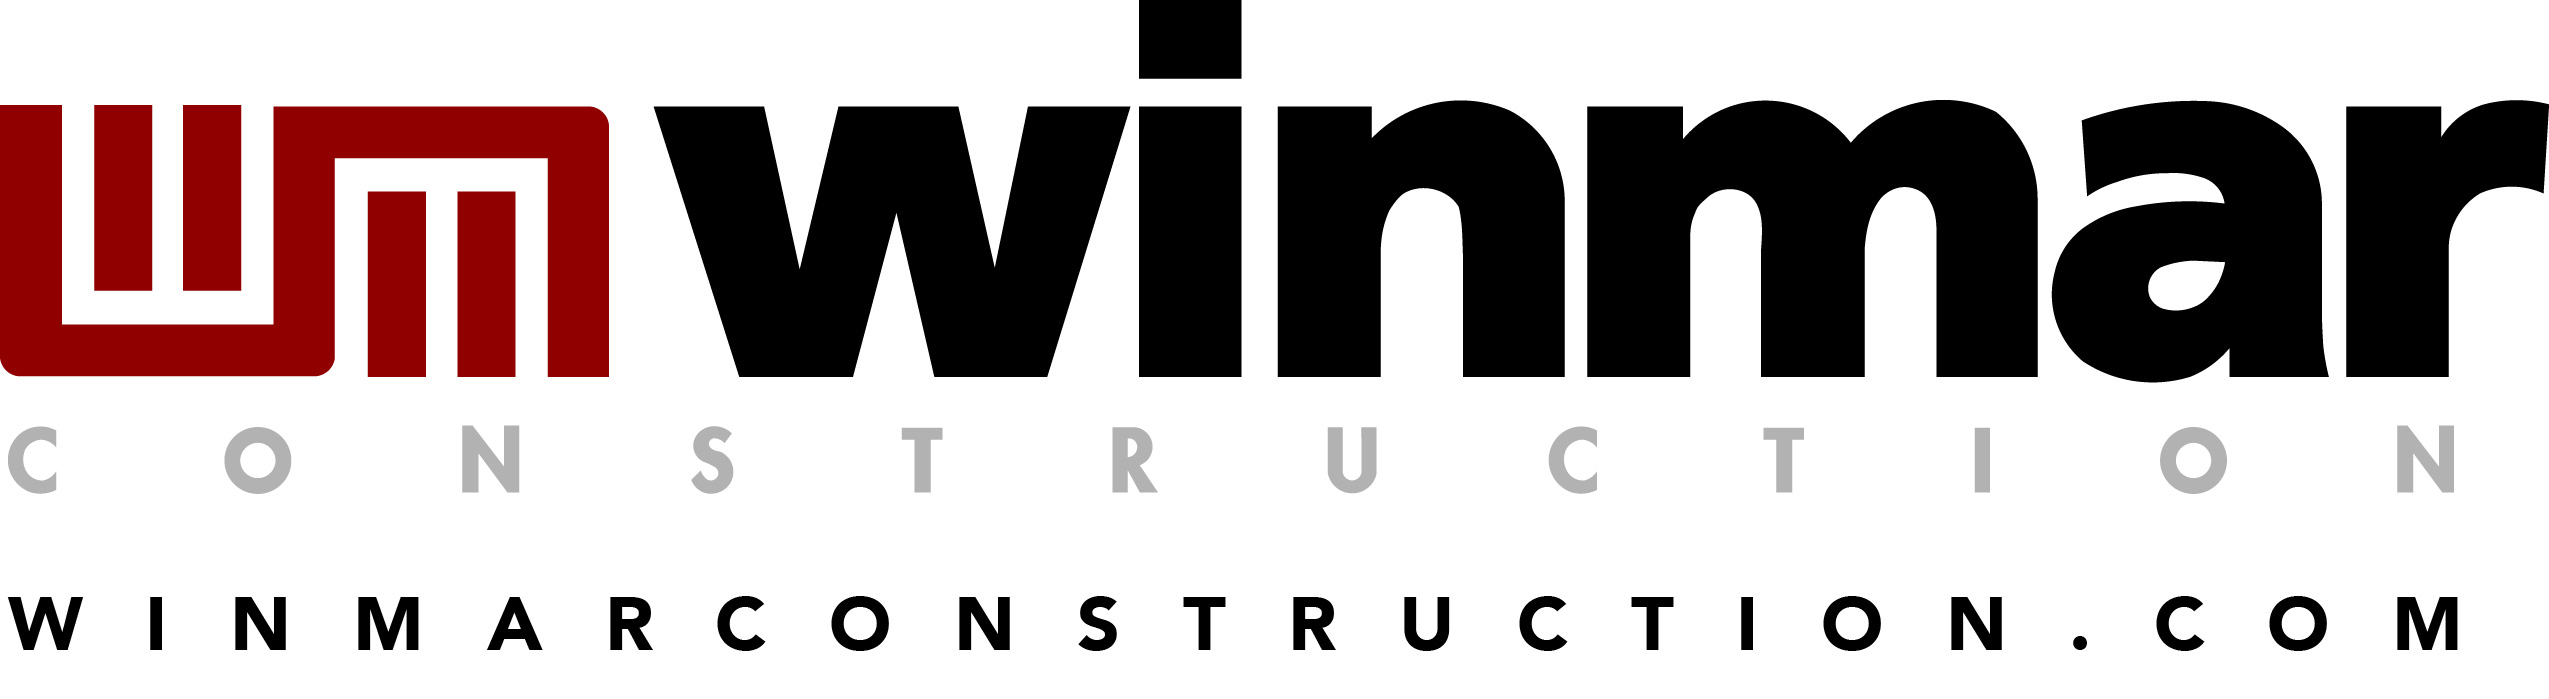 WINMAR%20CONSTRUCTION%20VECTOR%20logo.jpg